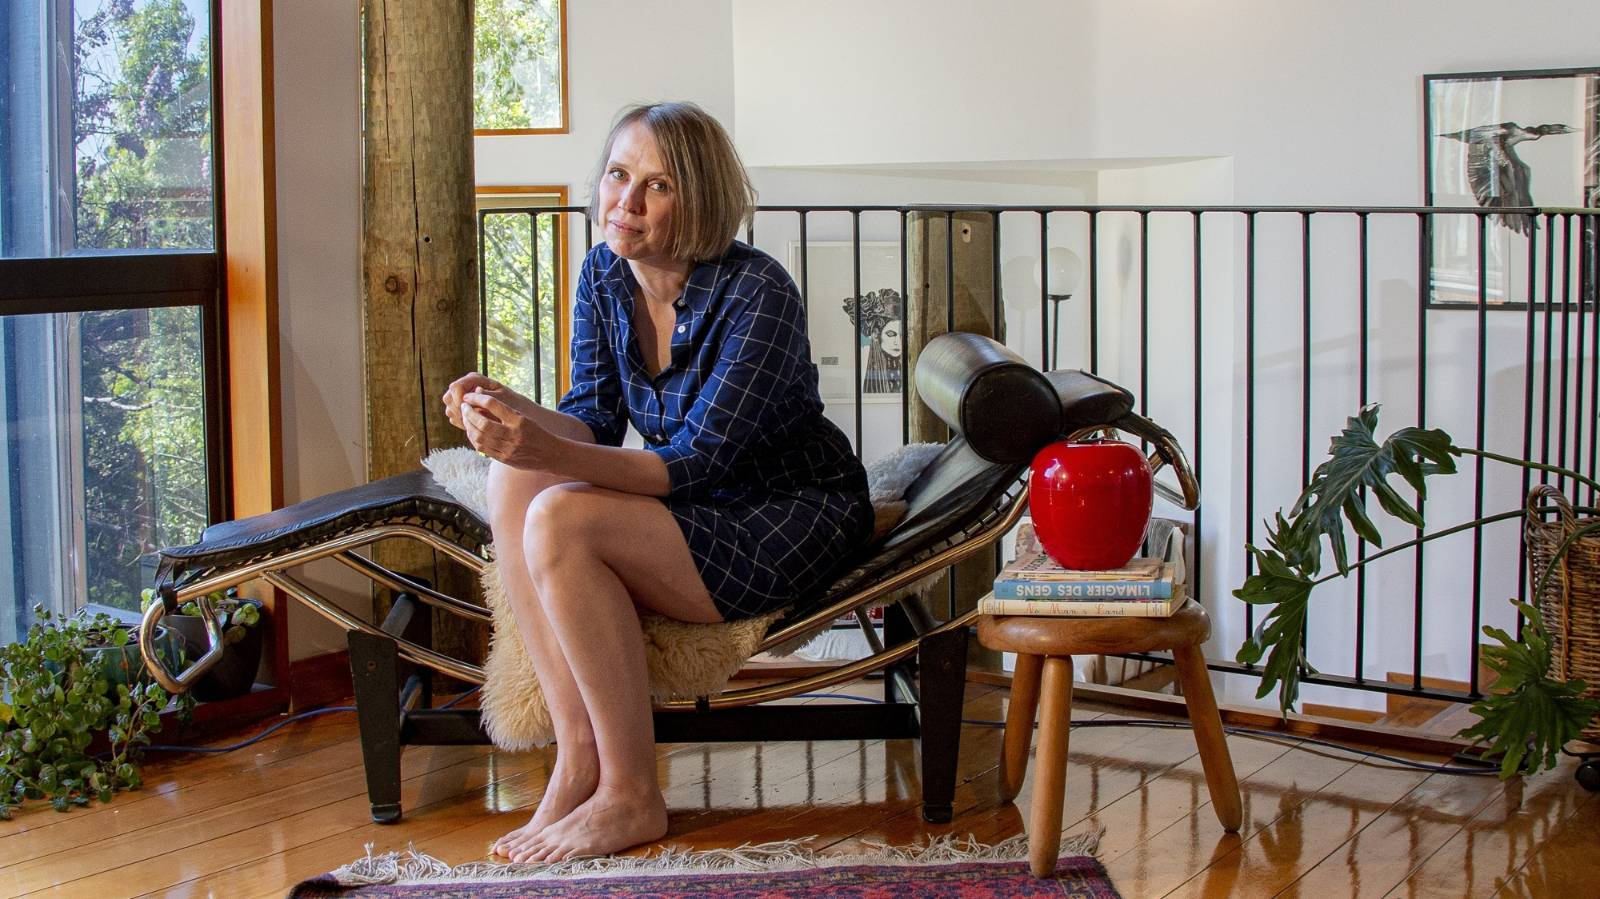 Living in a 'grown-up tree house'